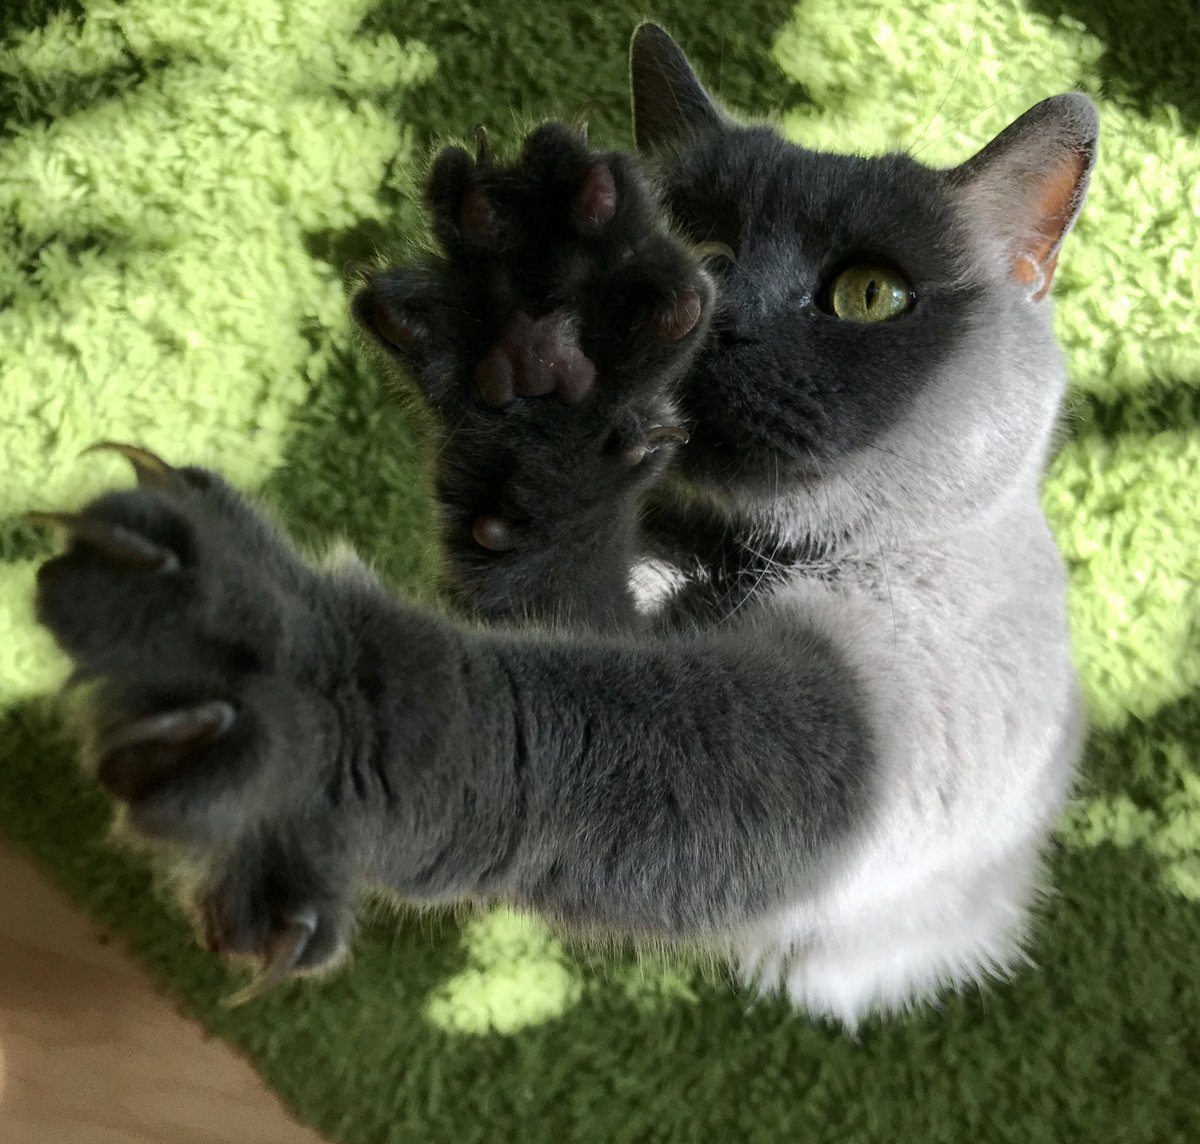 Happy #ToeBeanTuesday ! 🐾💚#PawsNeedClaws #CatsOfTwitter #Cats #TunaTuesday https://t.co/07WS1hHu5e